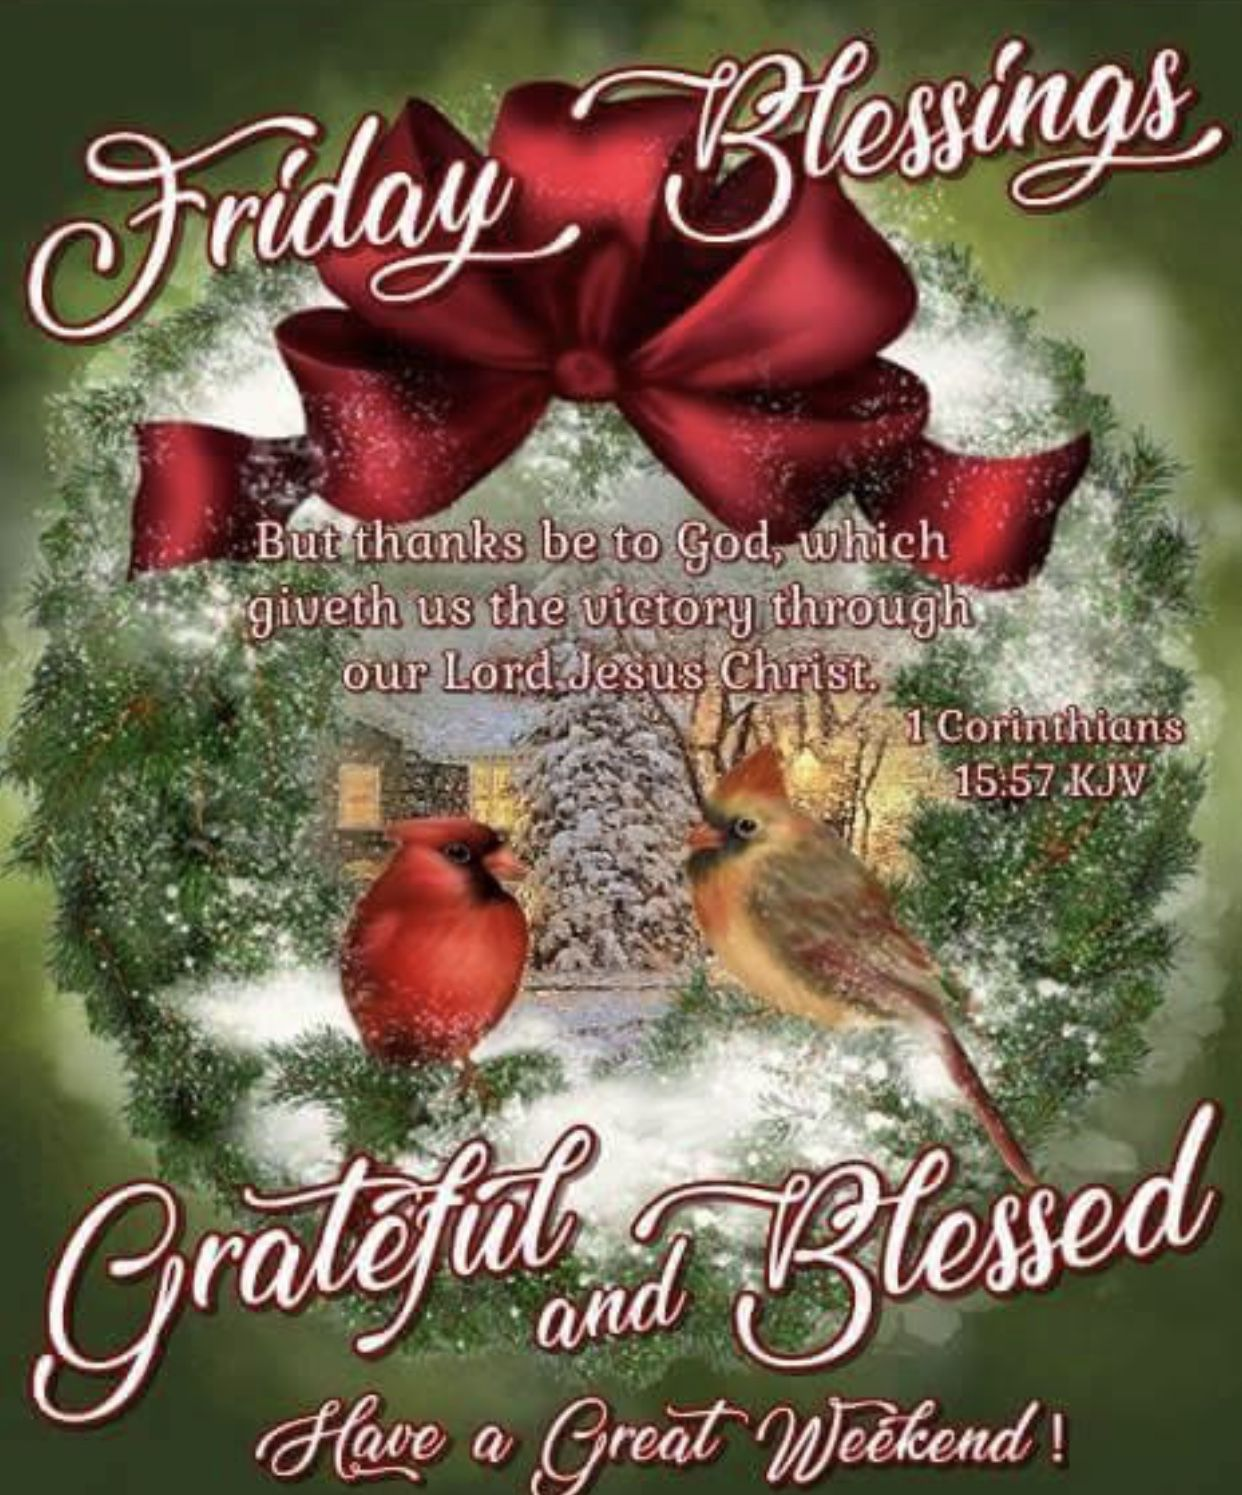 Friday morning quotes image by Cheri Johnson Matthews on days of. the week..   Good morning ...